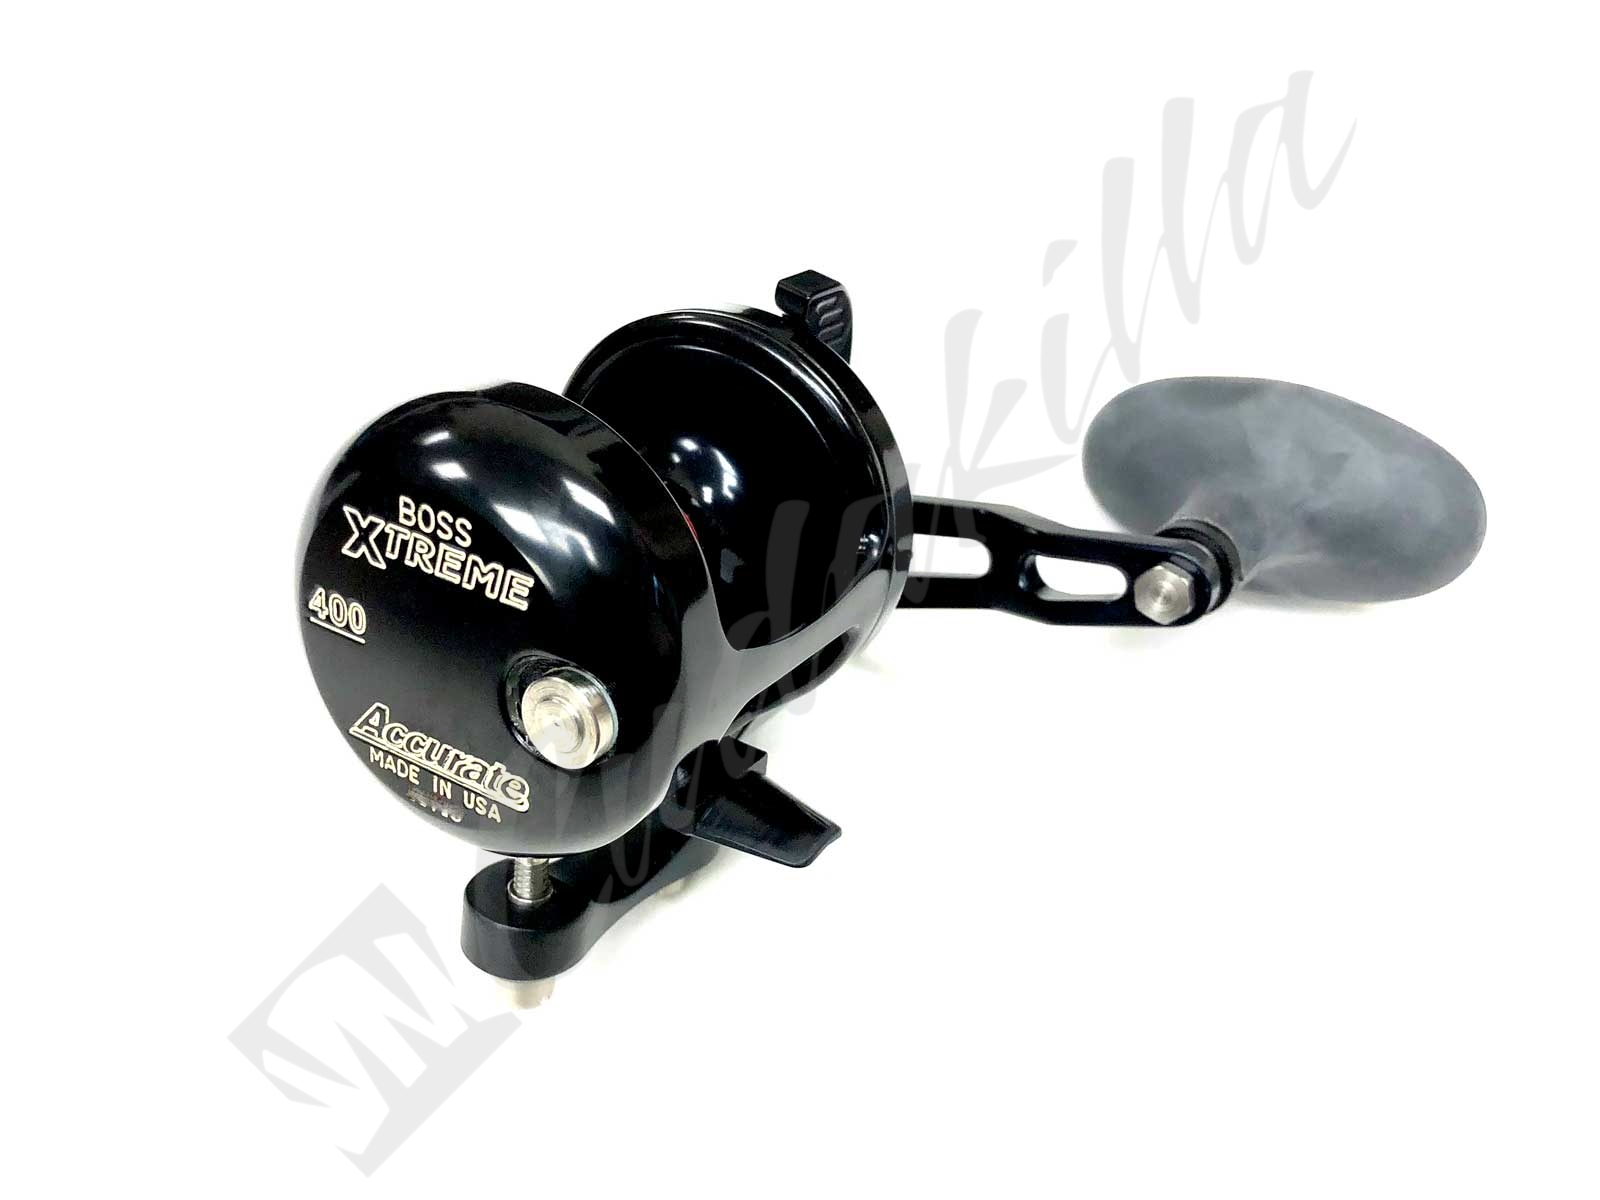 Accurate Boss Xtreme 400 Single Speed Conventional Reel - BLACK